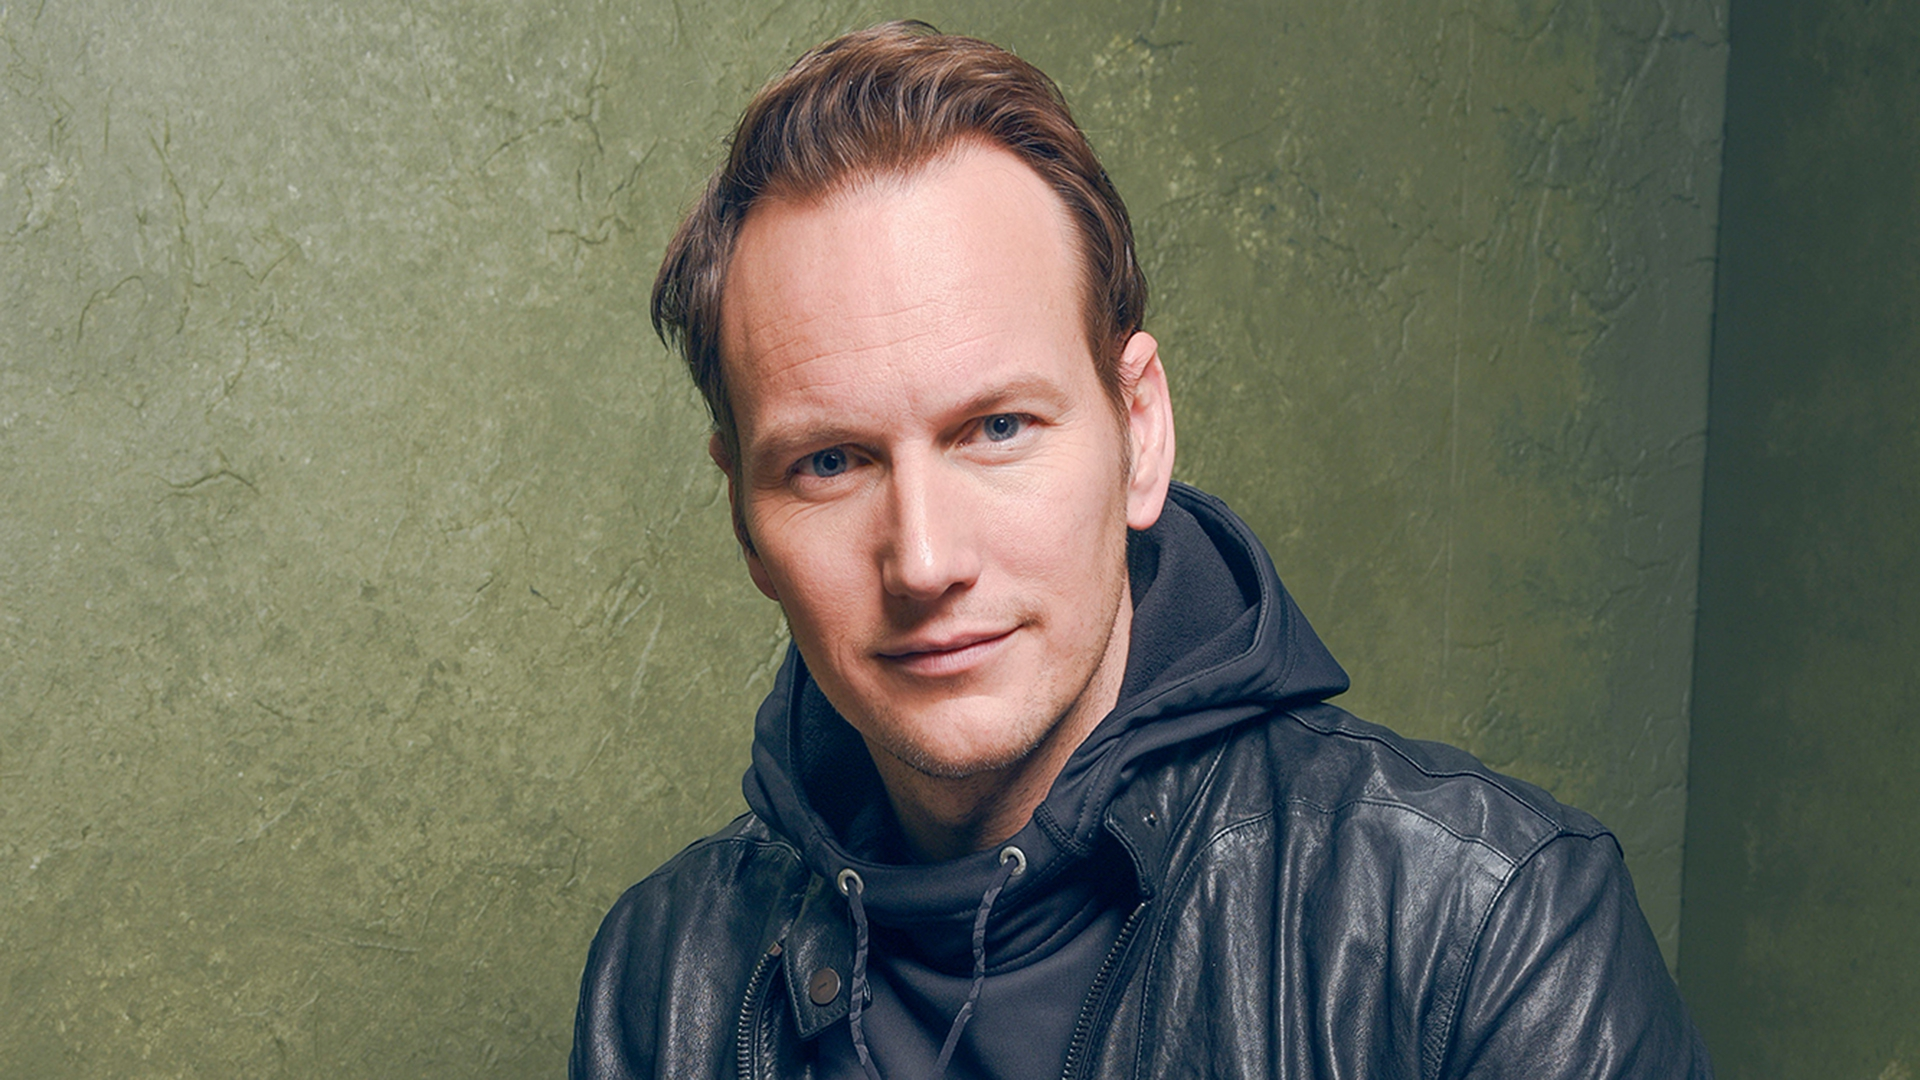 High Resolution Wallpapers Of Animals Patrick Wilson Wallpapers Hd Pictures Images High Quality